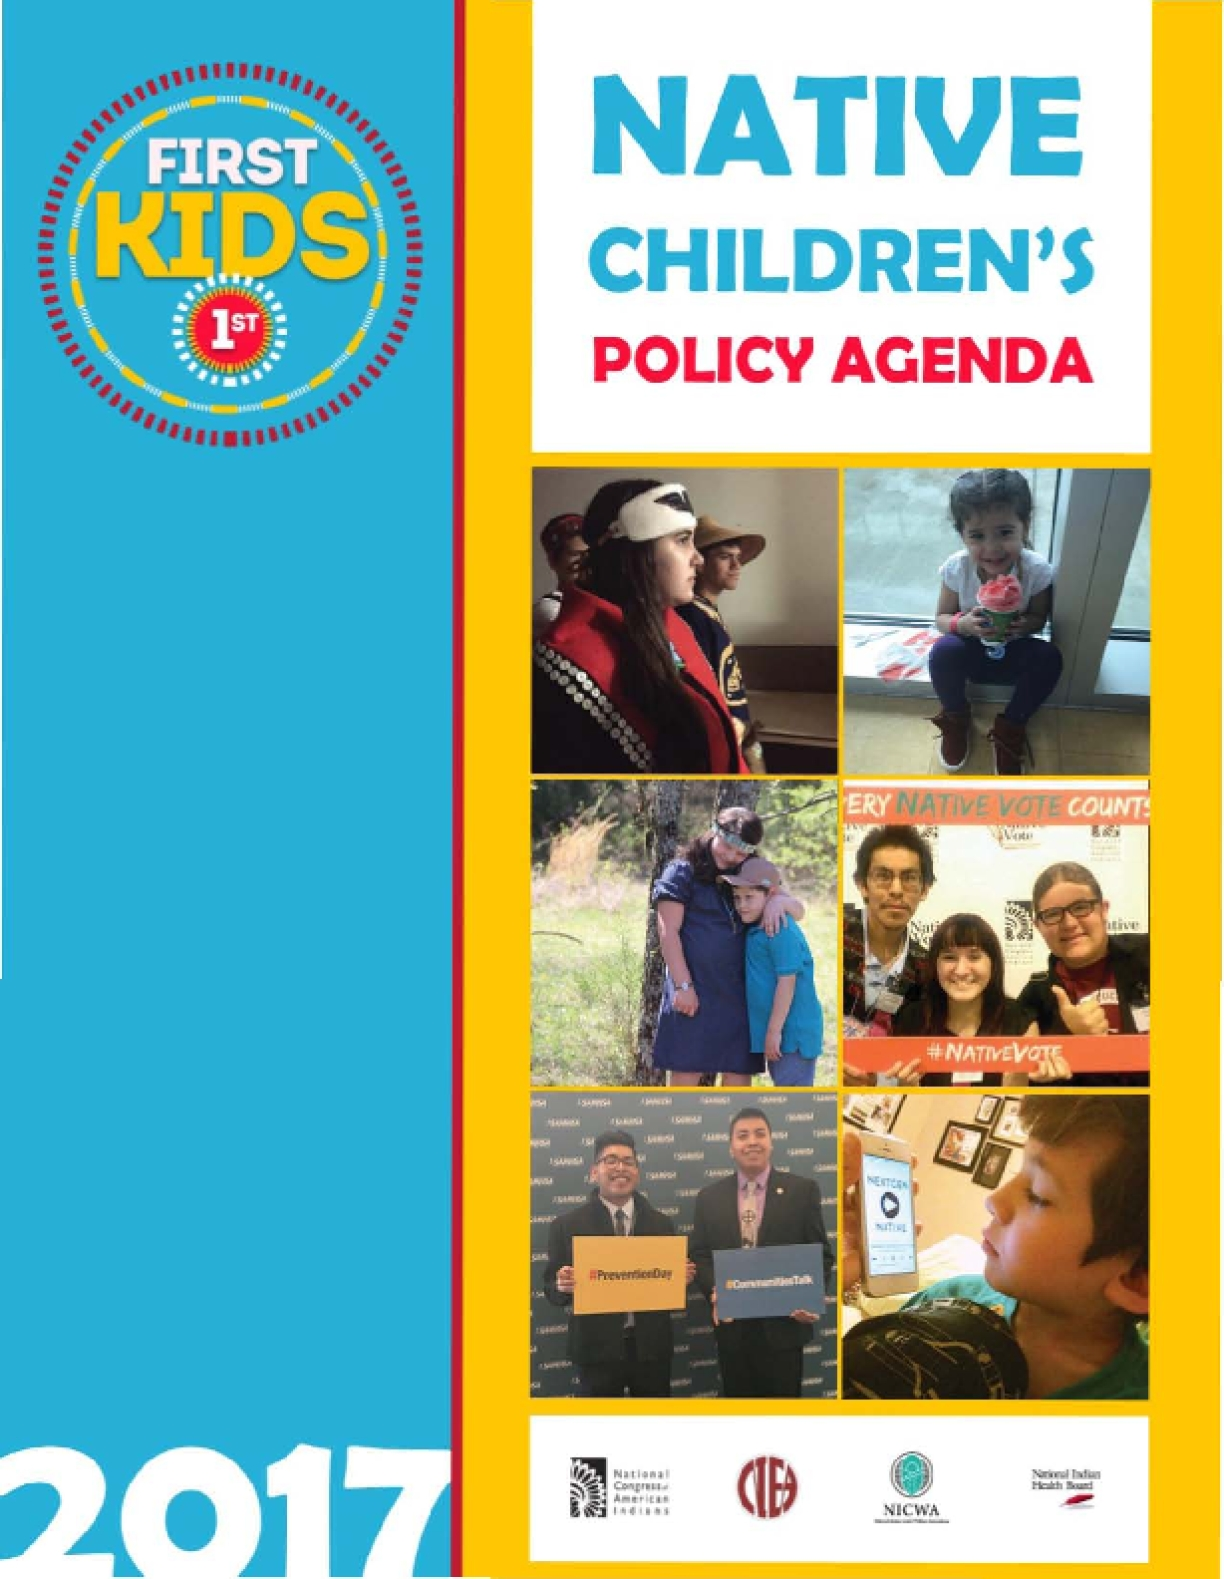 Native Children's Policy Agenda: A Publication of the First Kids 1st Initiative